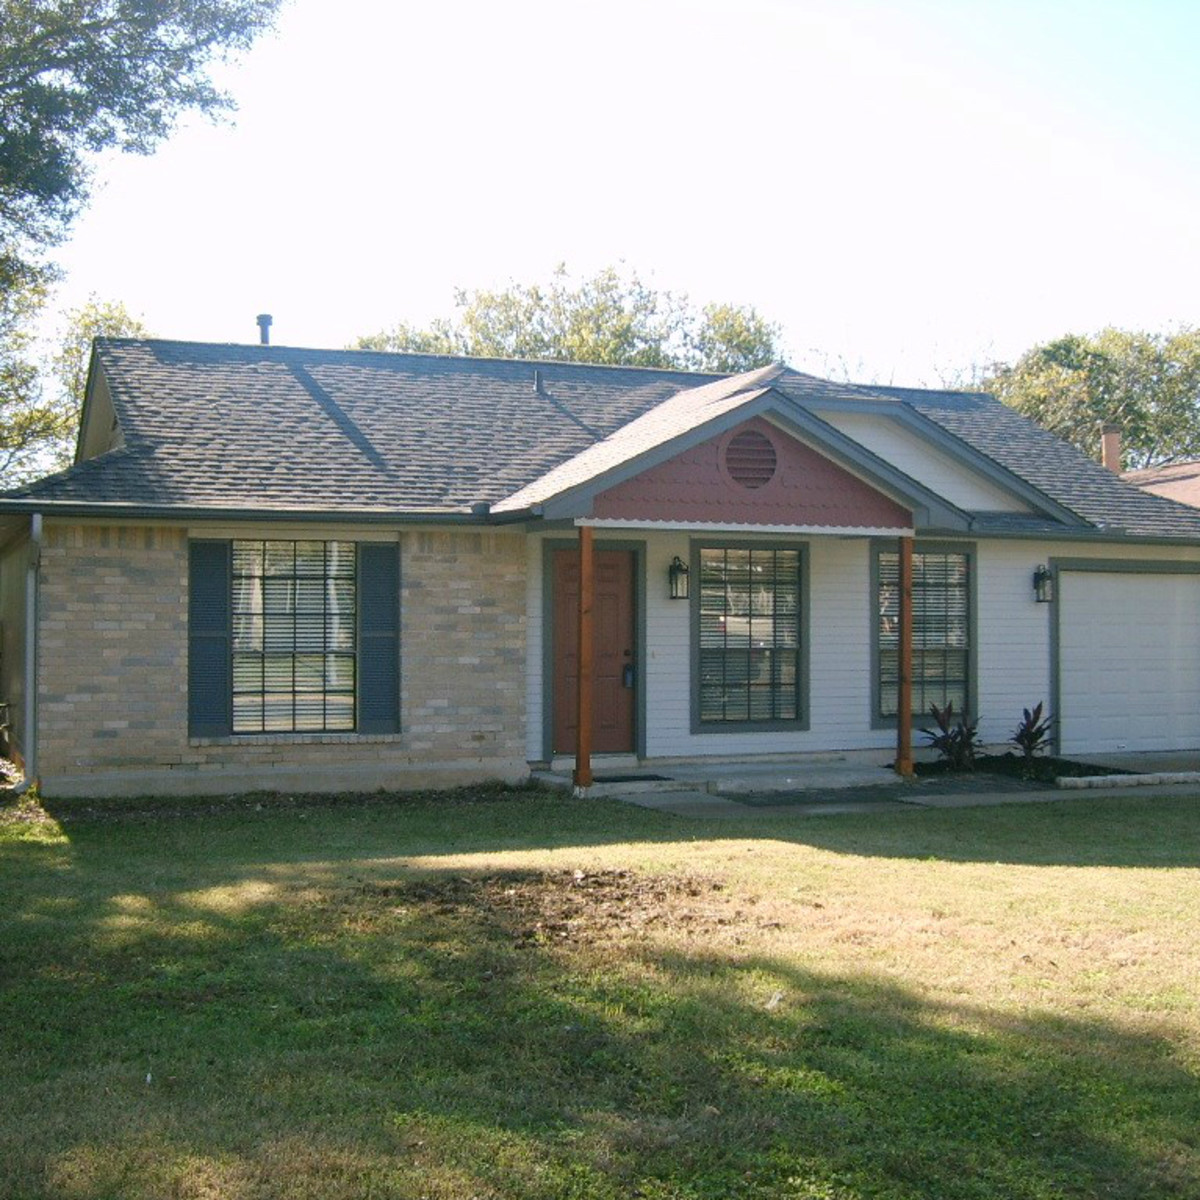 Austin home house 1405 Tuffit Lane 78753 February 2016 front